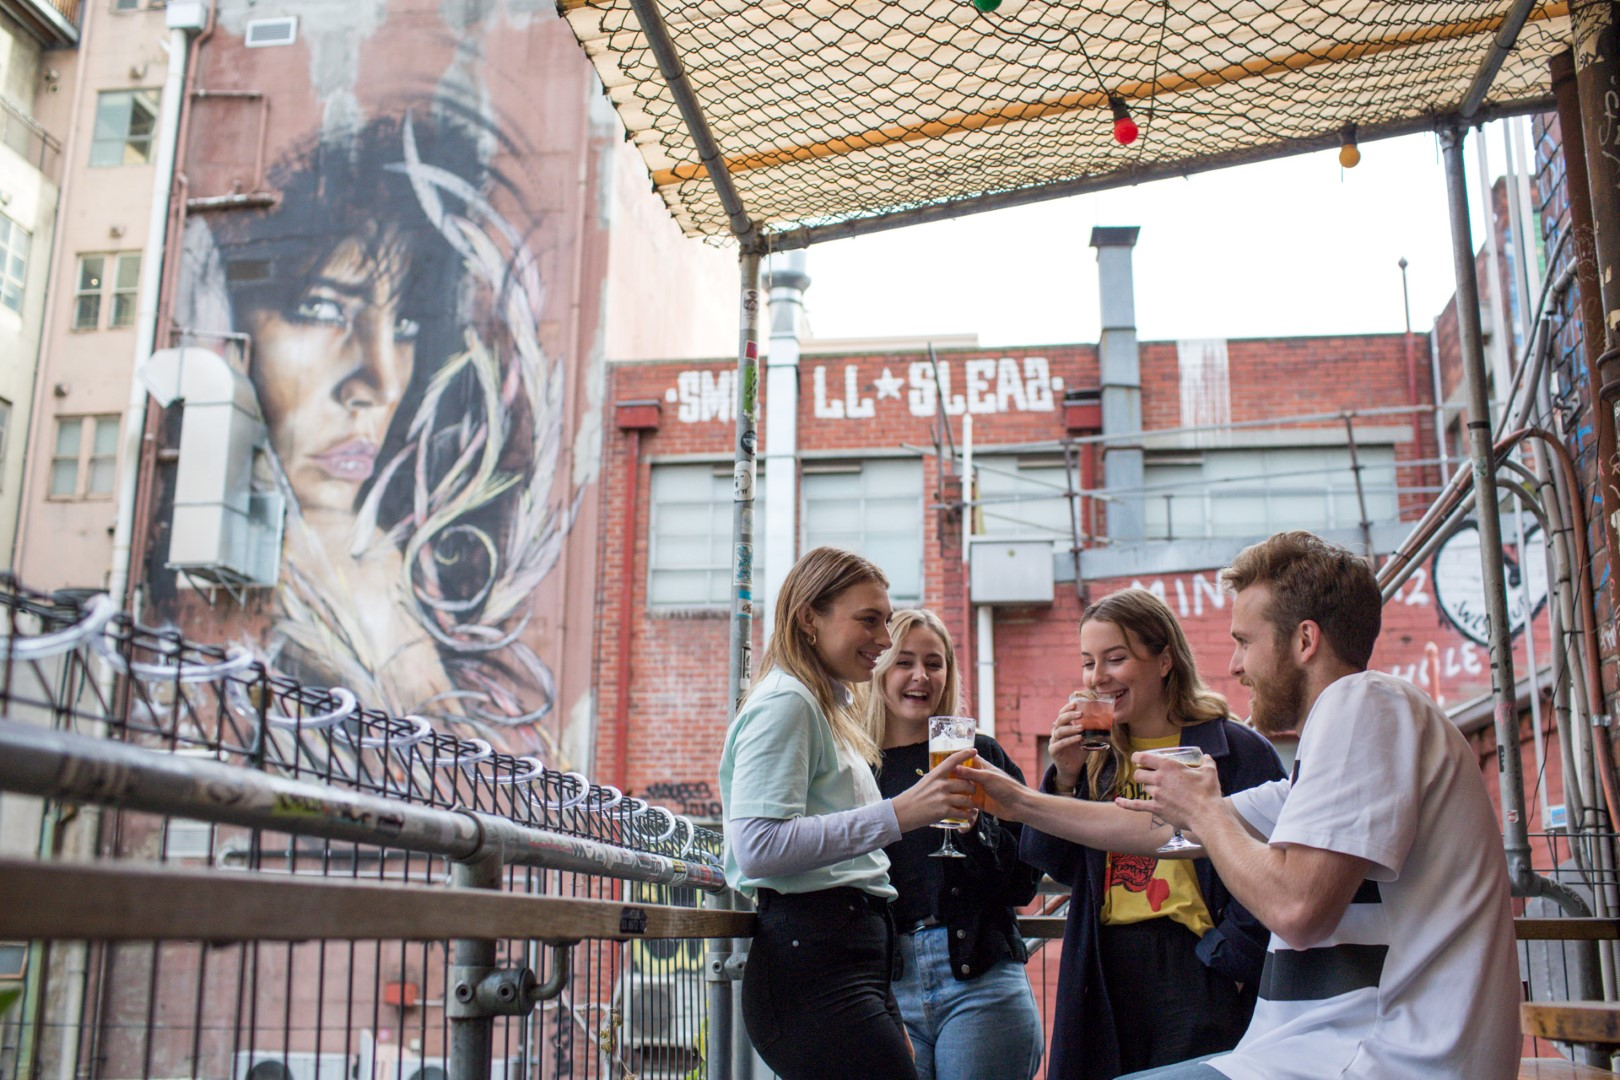 A group of people having drinks on a balcony with a large street art mural in the background